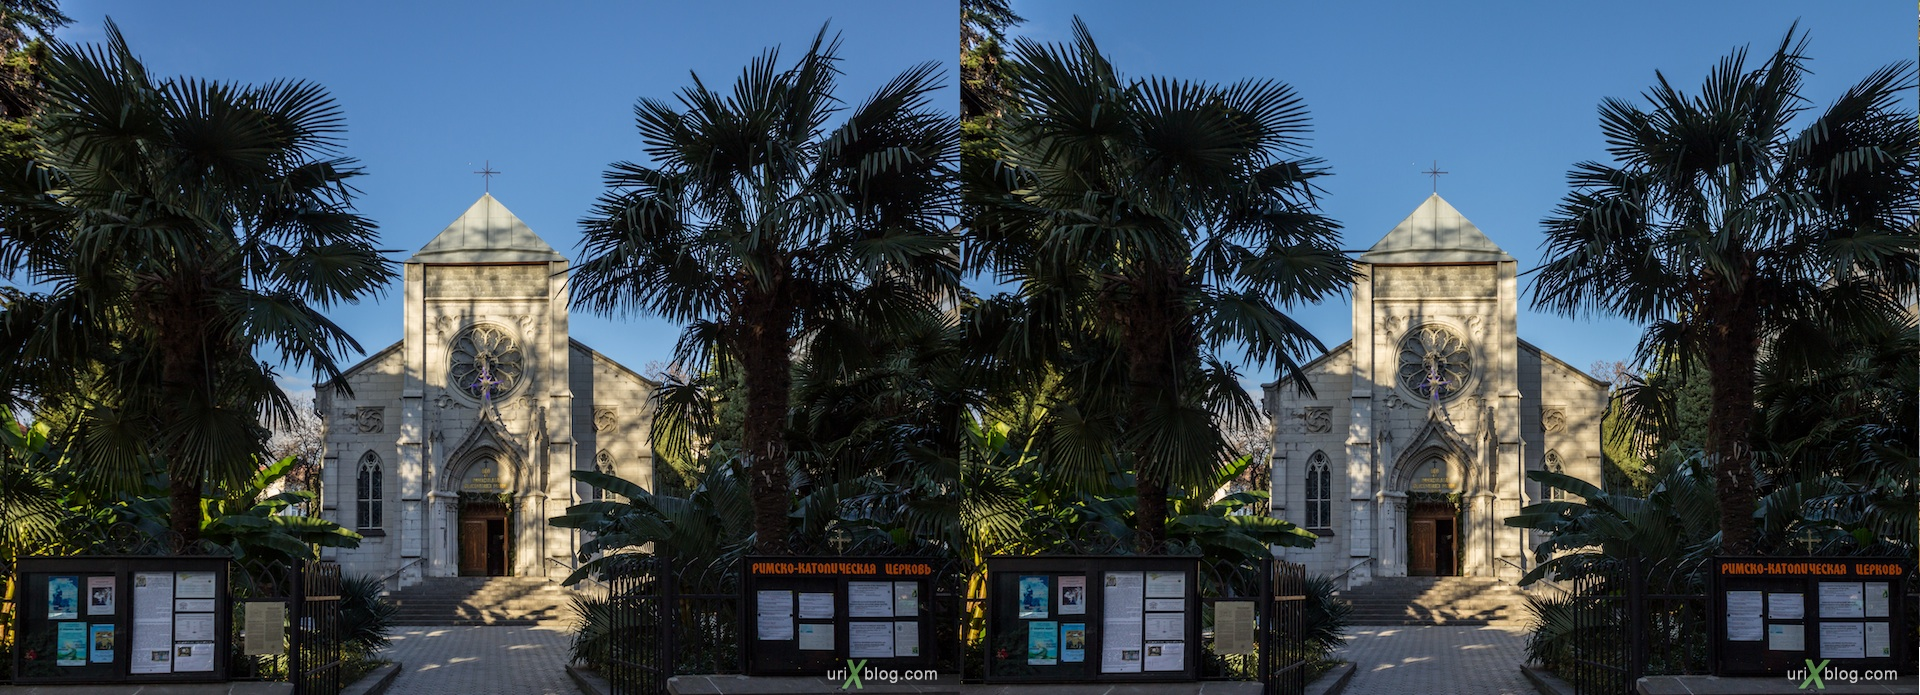 2012, Pushkinskaya street, church, Yalta, evening, coast city, Crimea, Ukraine, 3D, stereo pair, cross-eyed, crossview, cross view stereo pair, stereoscopic